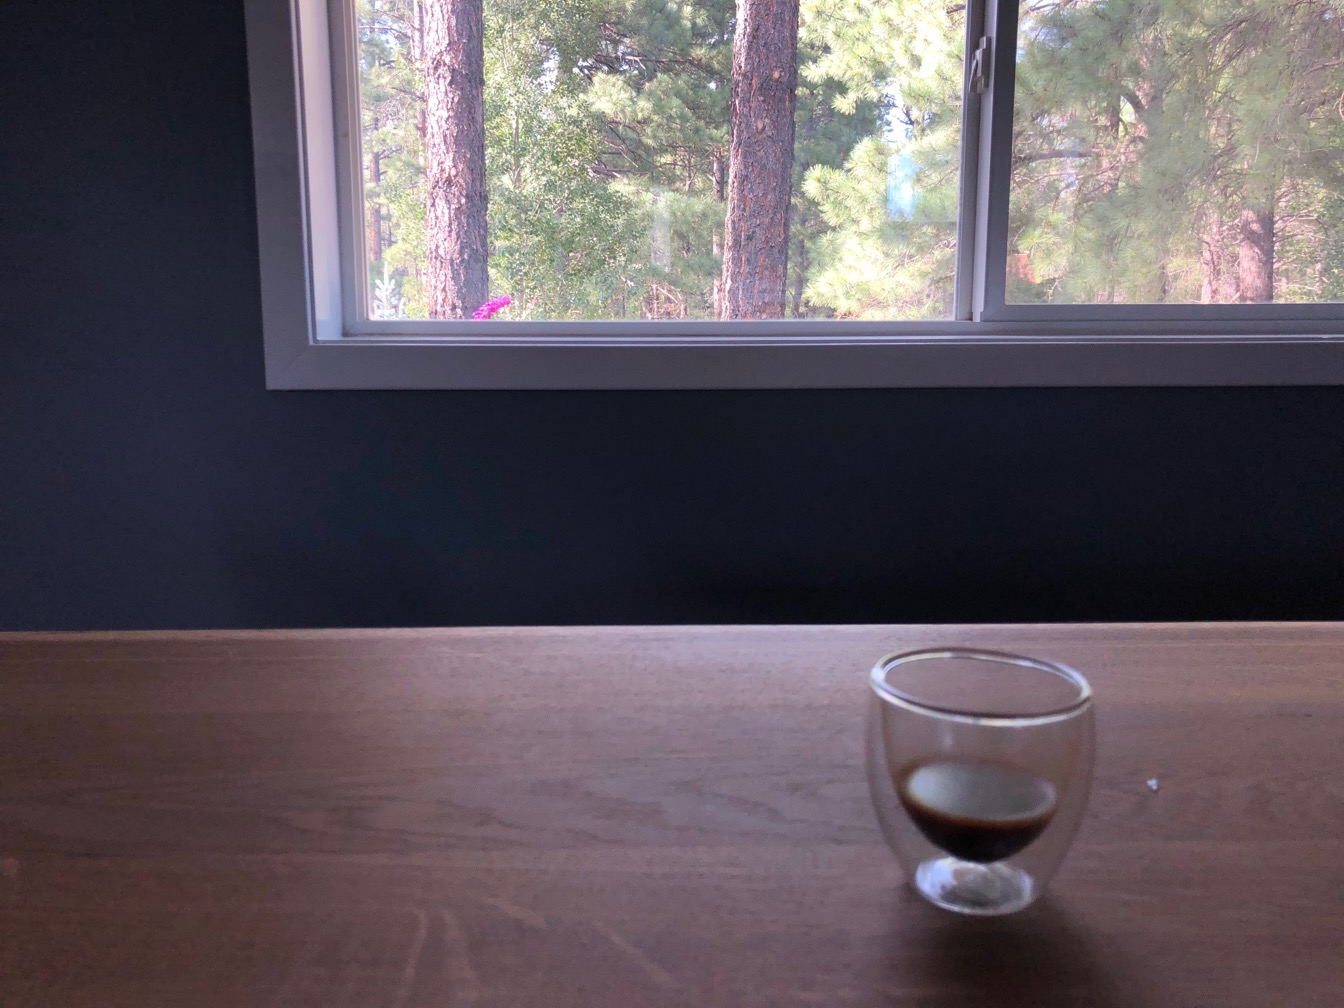 Photo of a small espresso cup on a table in front of a window.